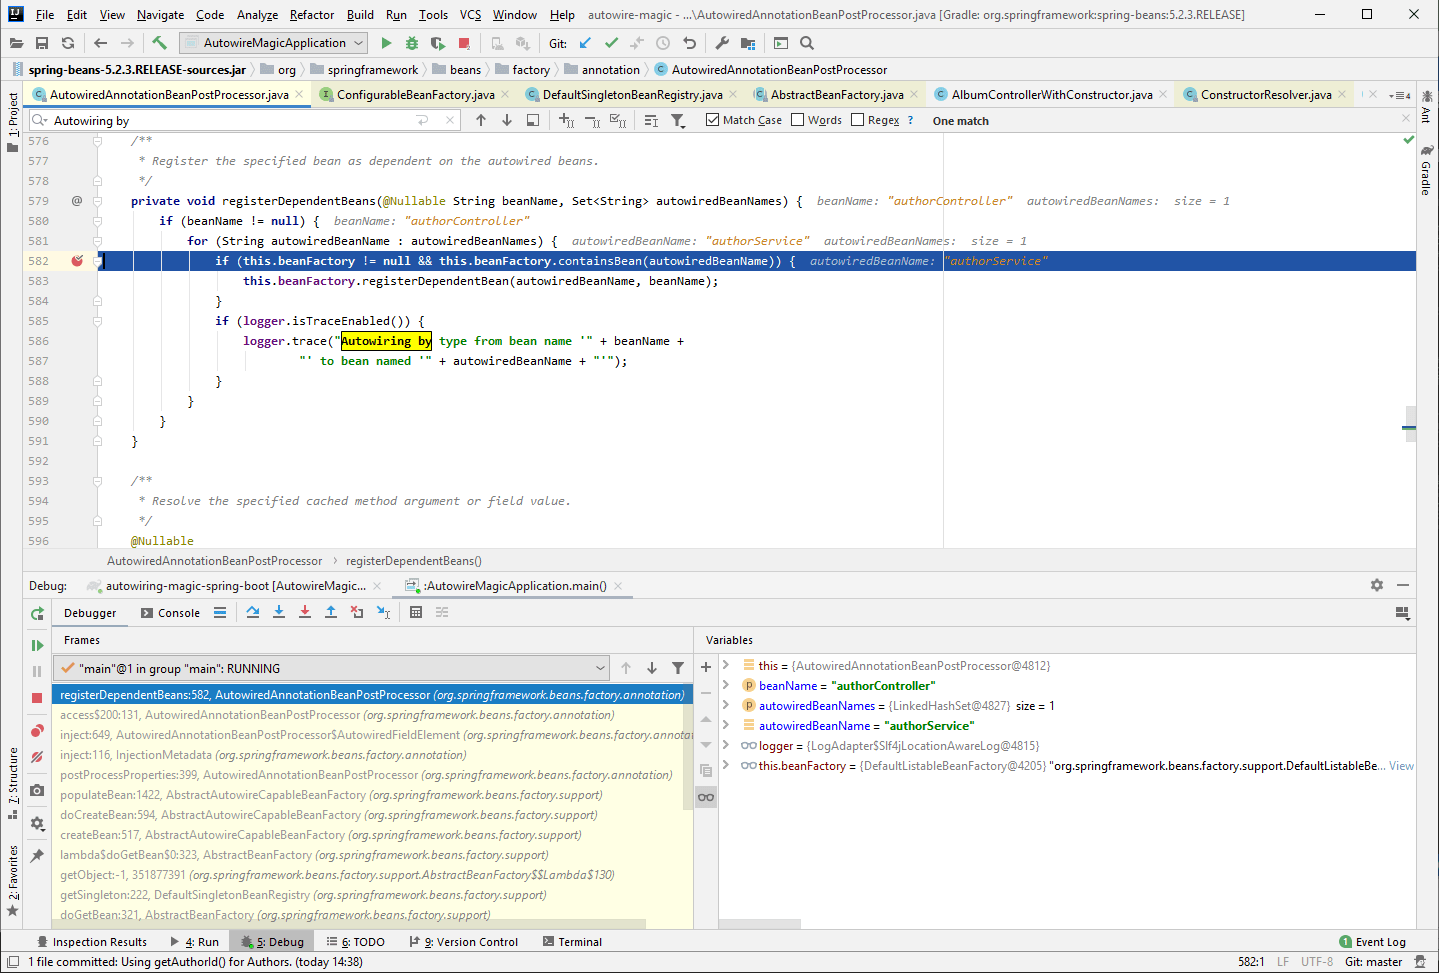 Debugging Spring in IntelliJ Idea to see how the dependency is registered